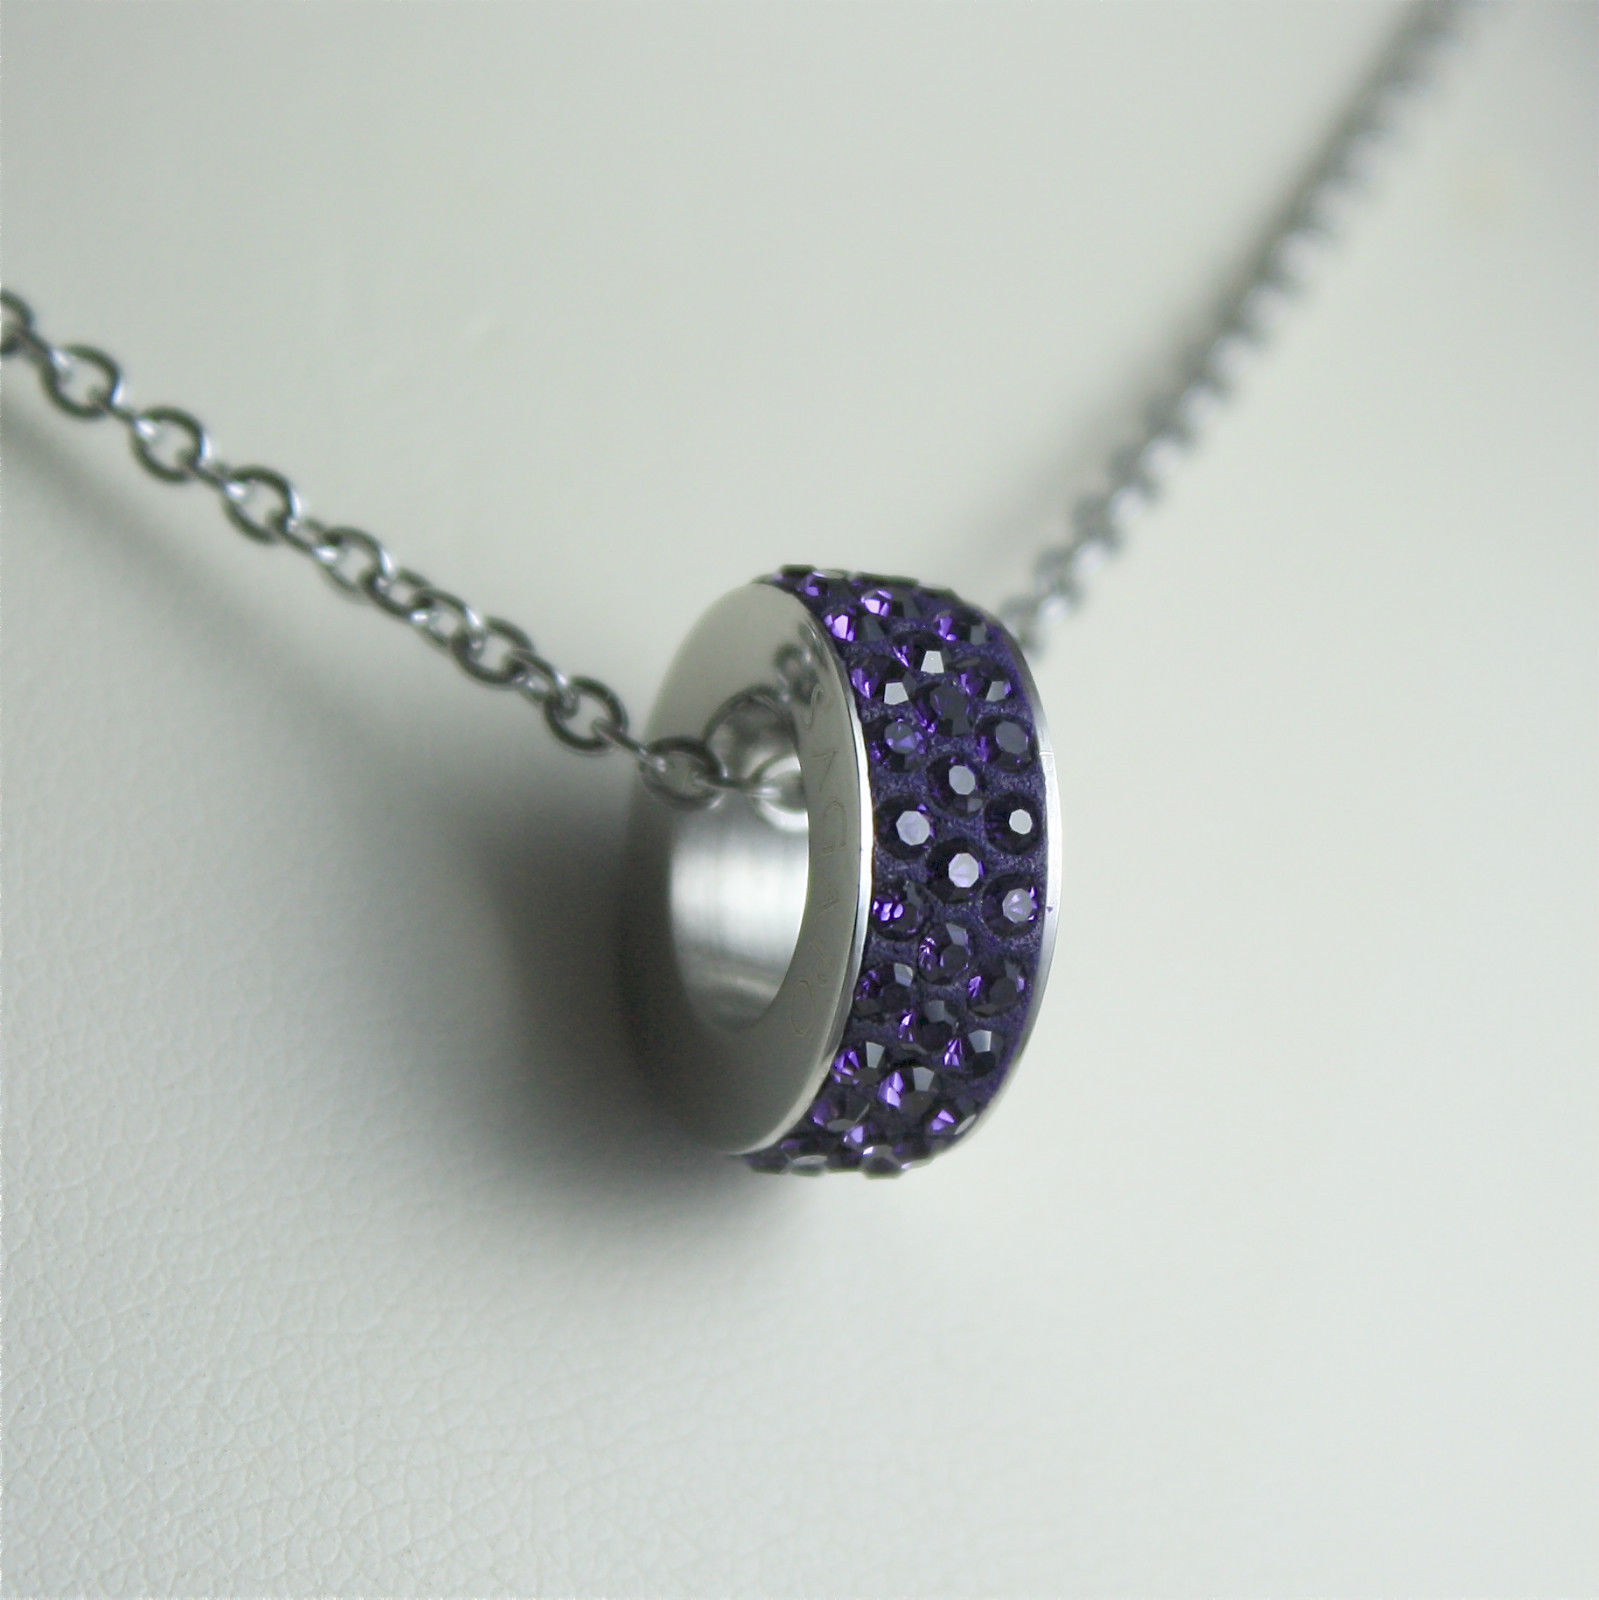 S'AGAPO' NECKLACE, 316L STEEL, VIOLET PENDANT WITH FACETED CRYSTALS.